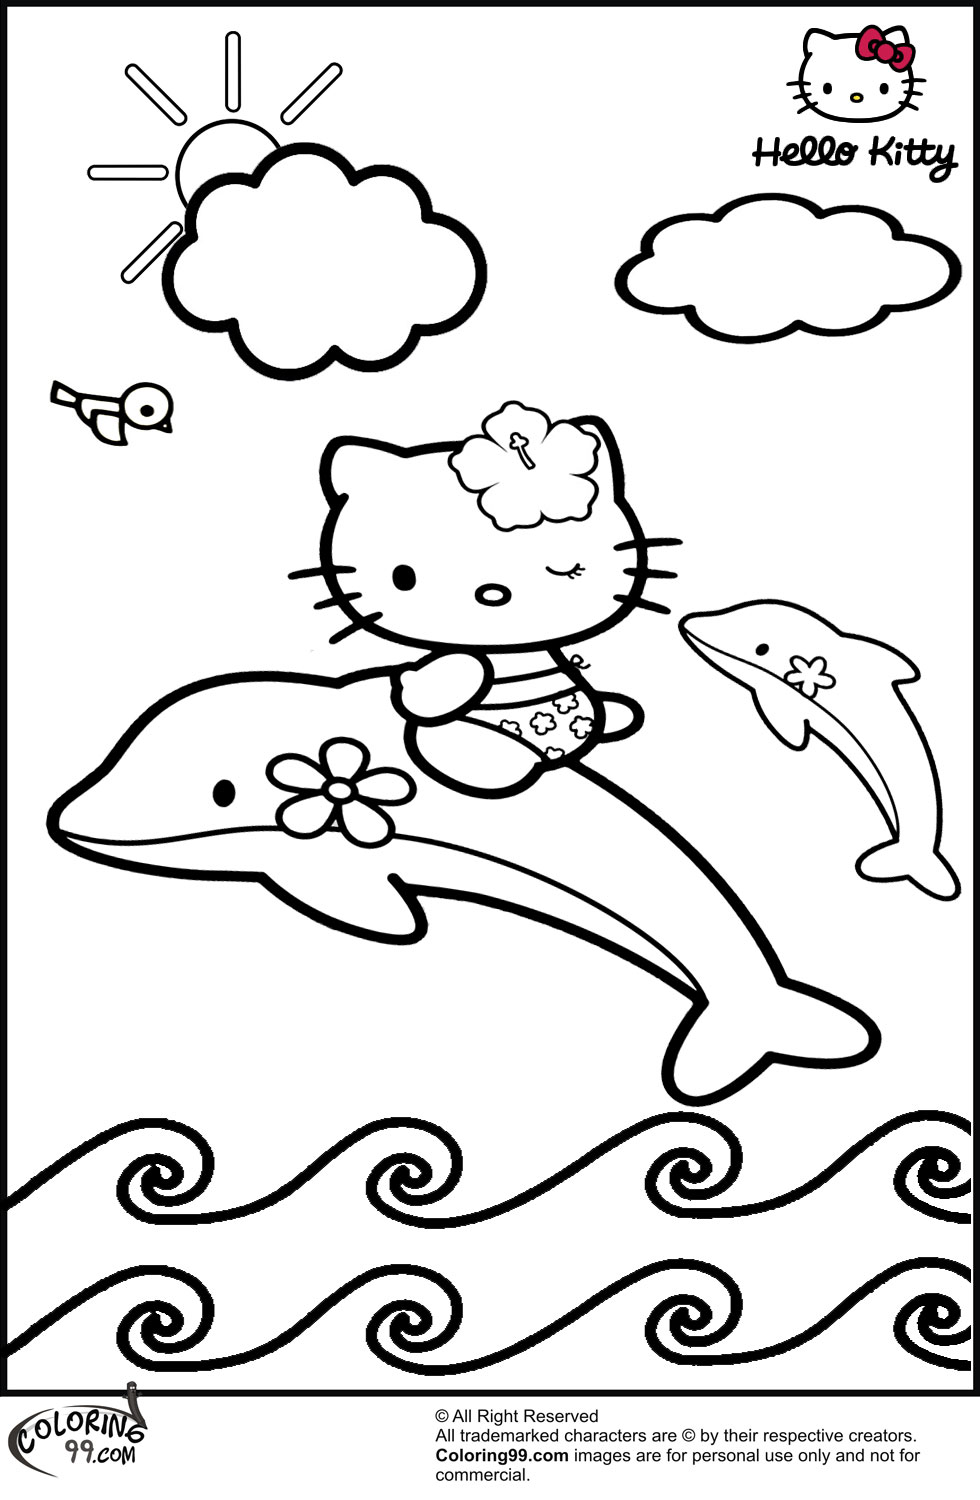 Coloring Pages Hello Kitty Dolphin : September team colors